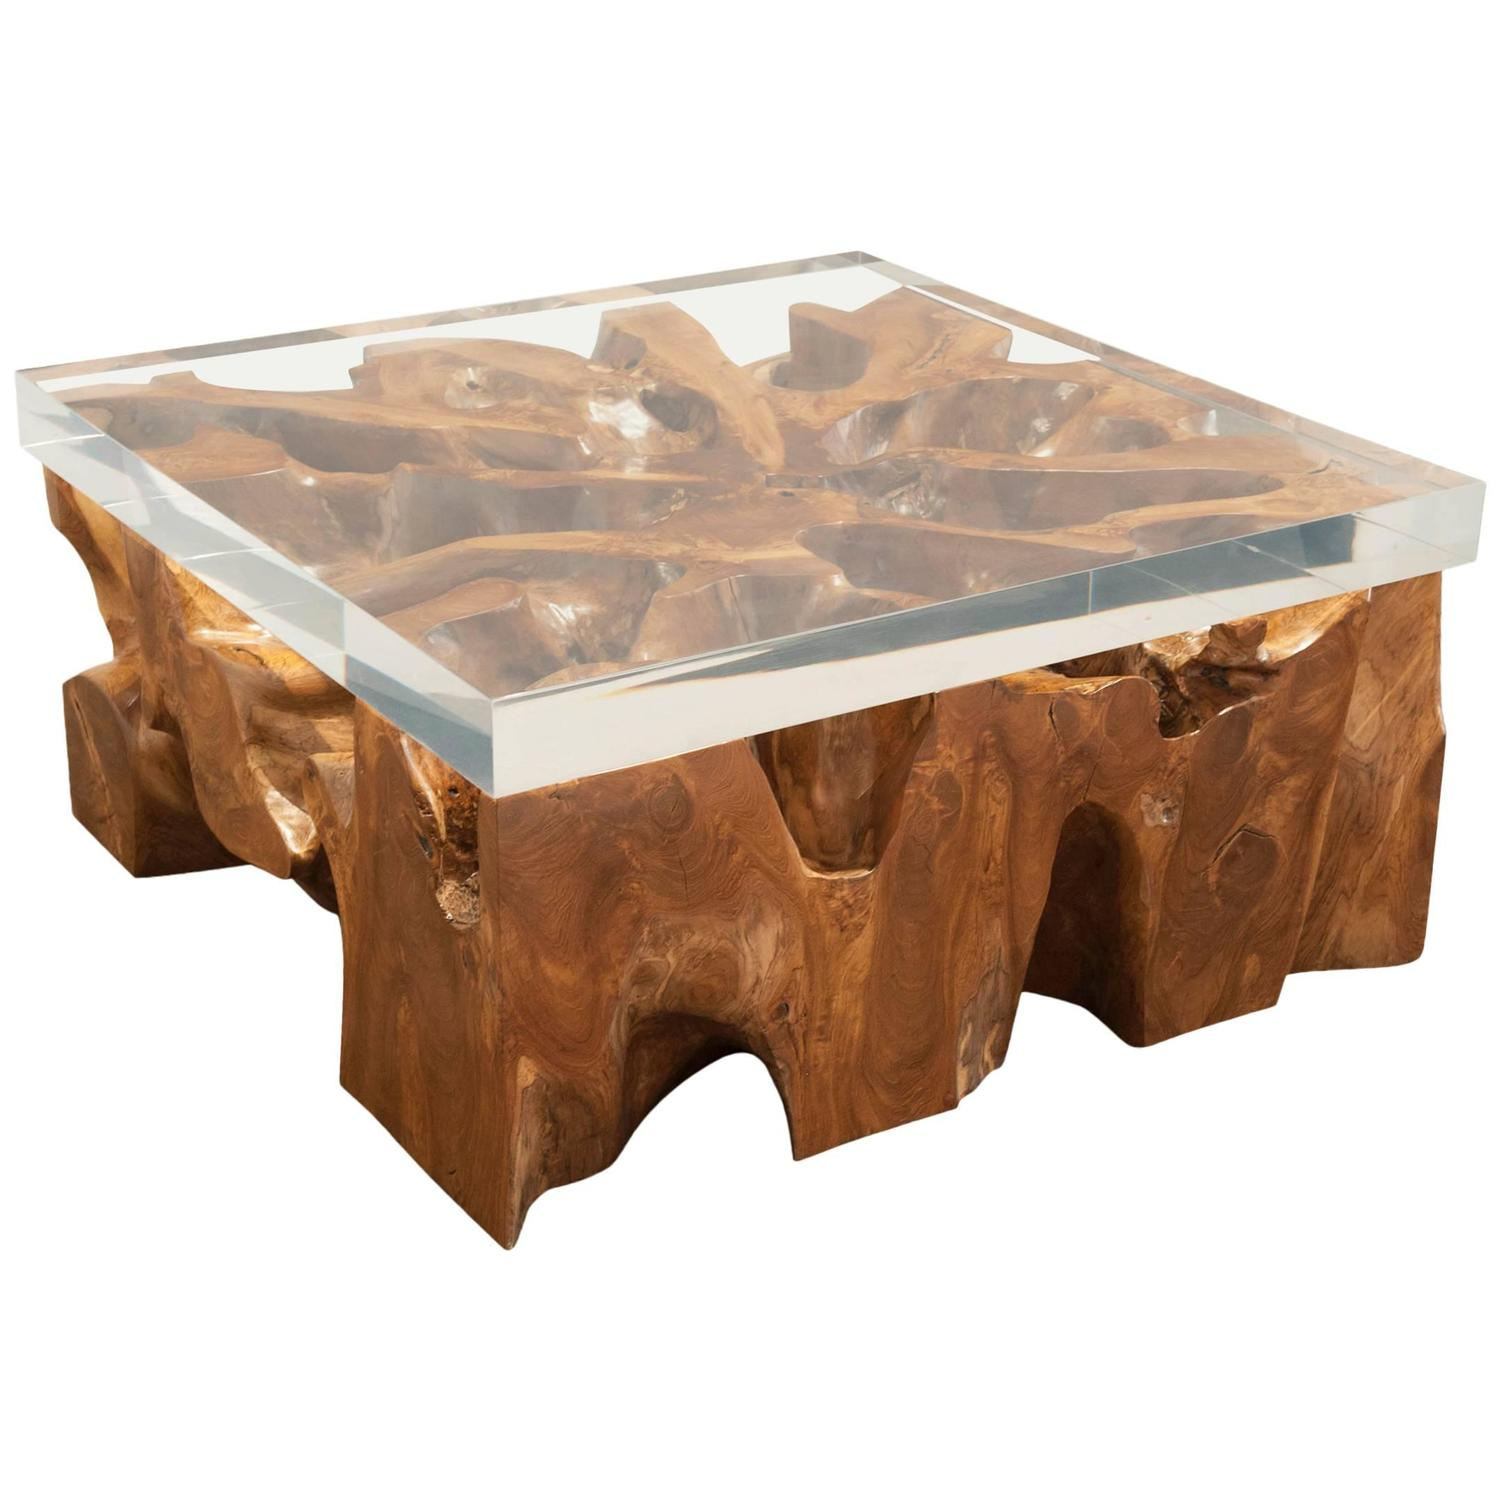 Large lucite and wood coffee table at 1stdibs Wide coffee table